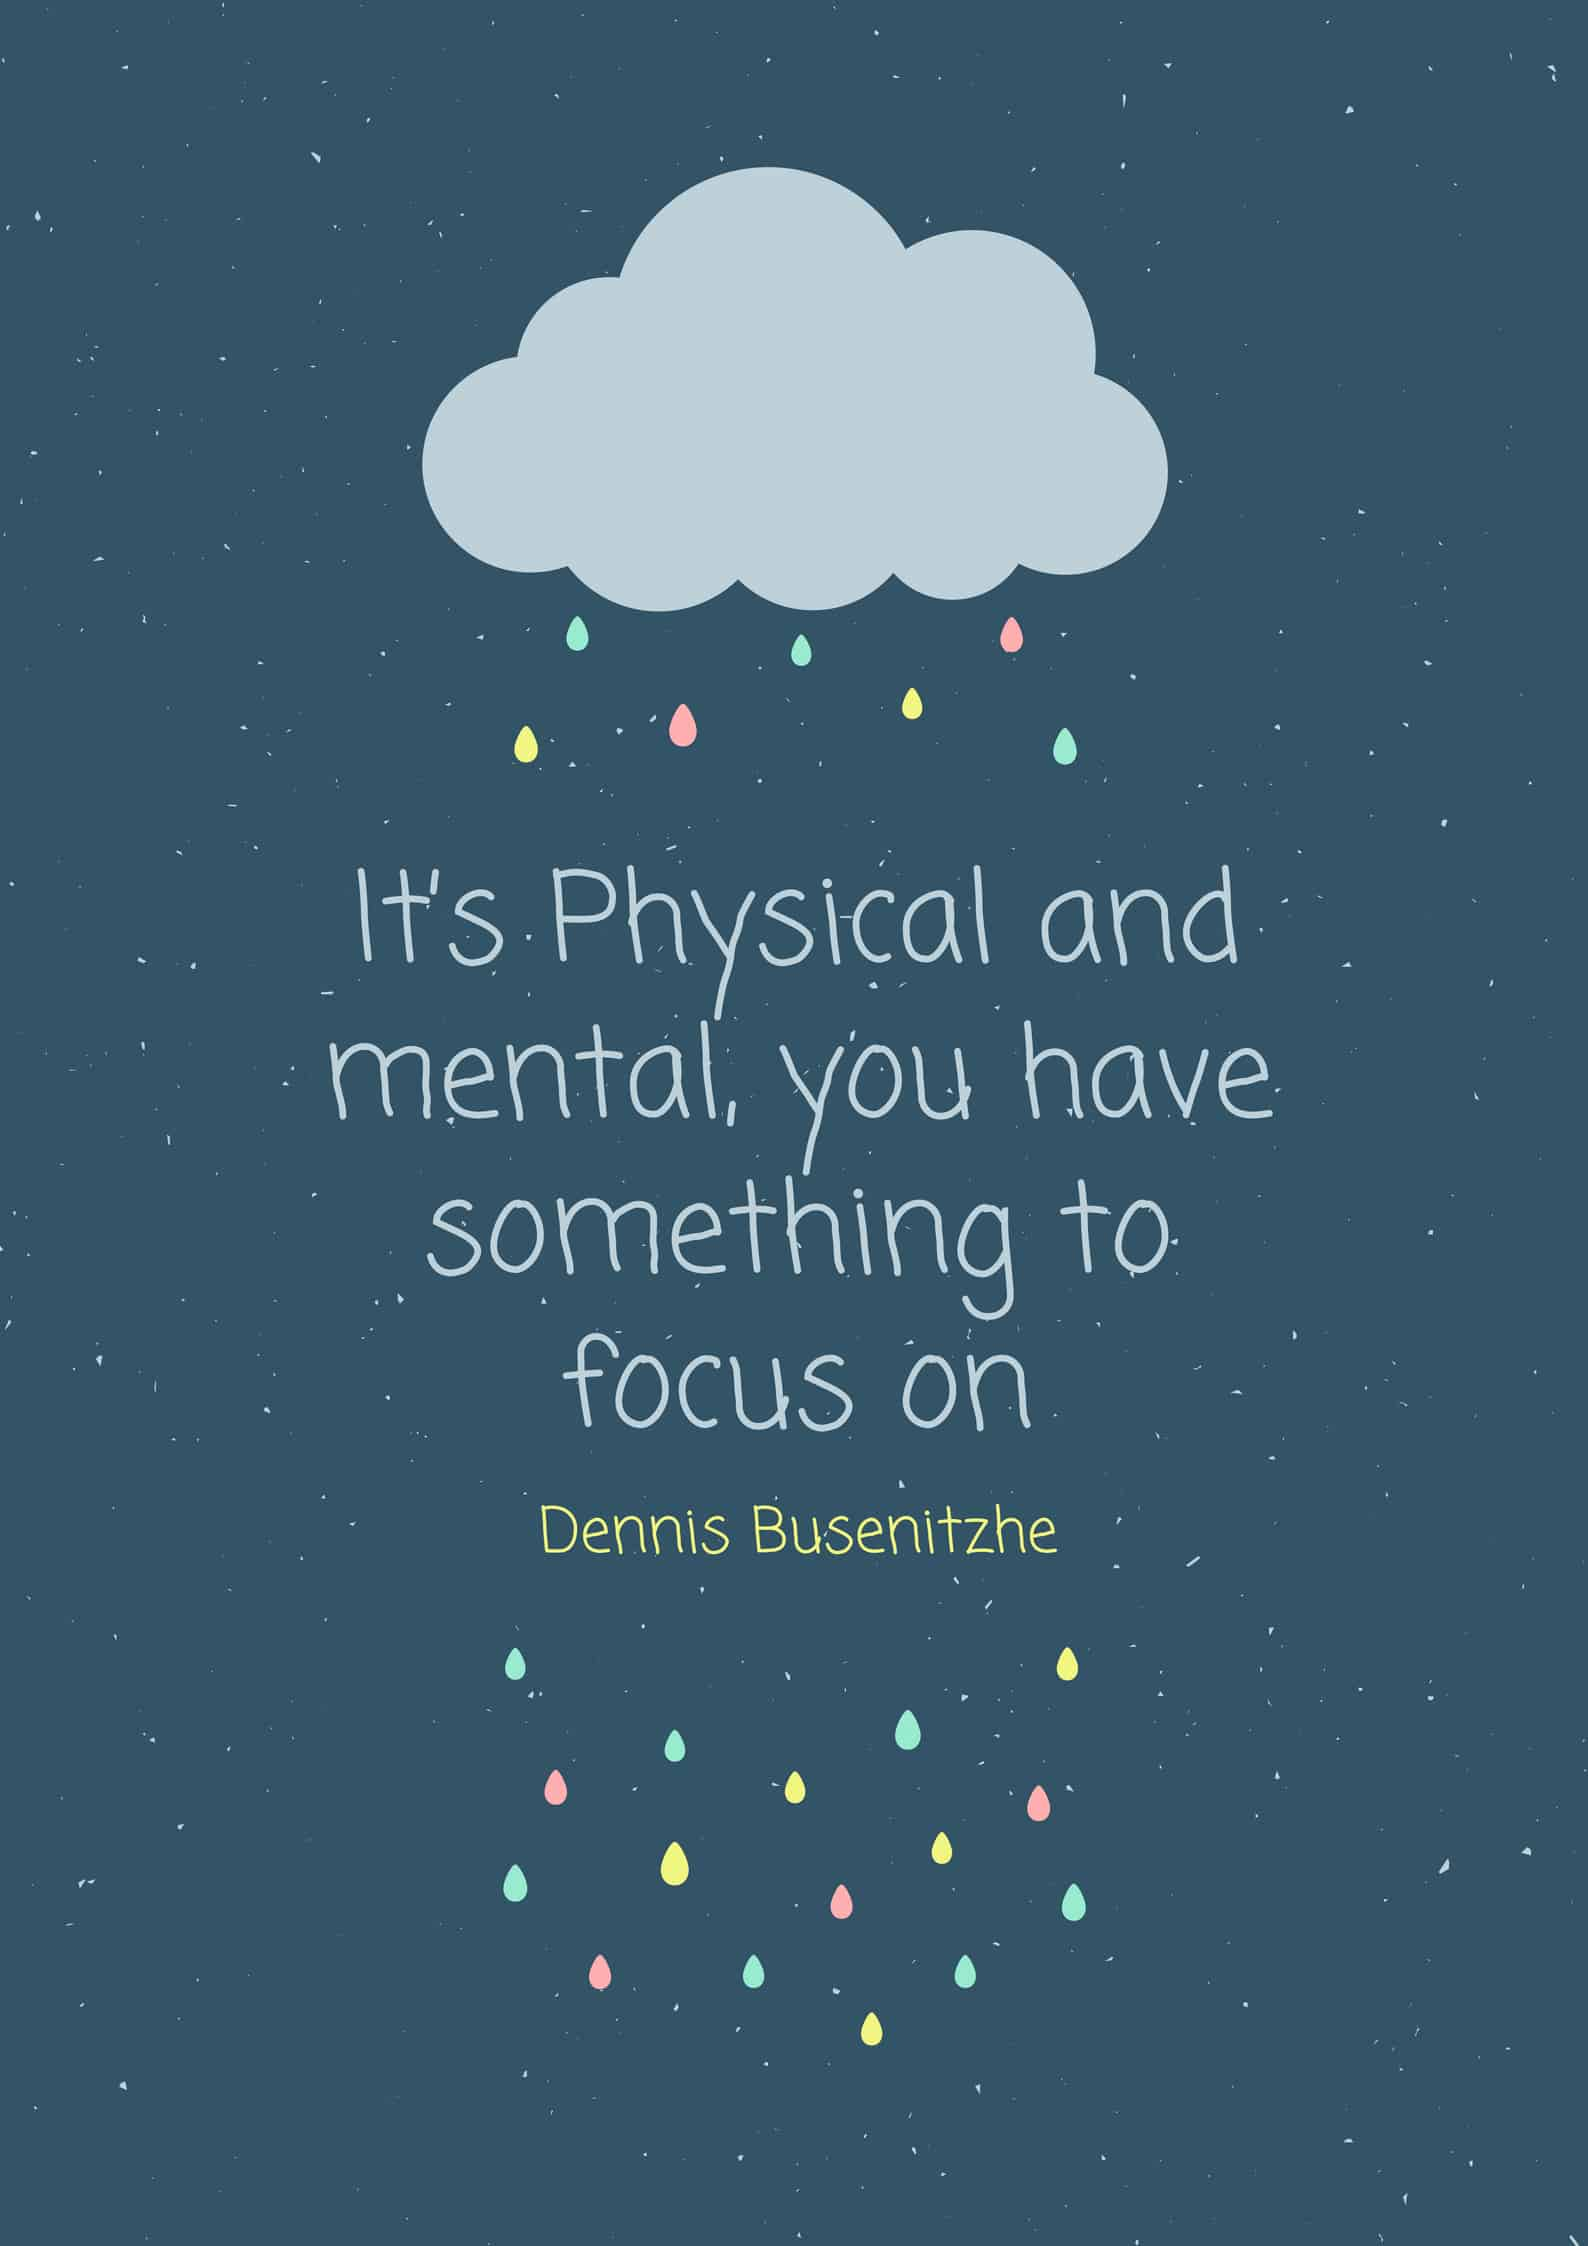 It's Physical and mental, you have something to focus on